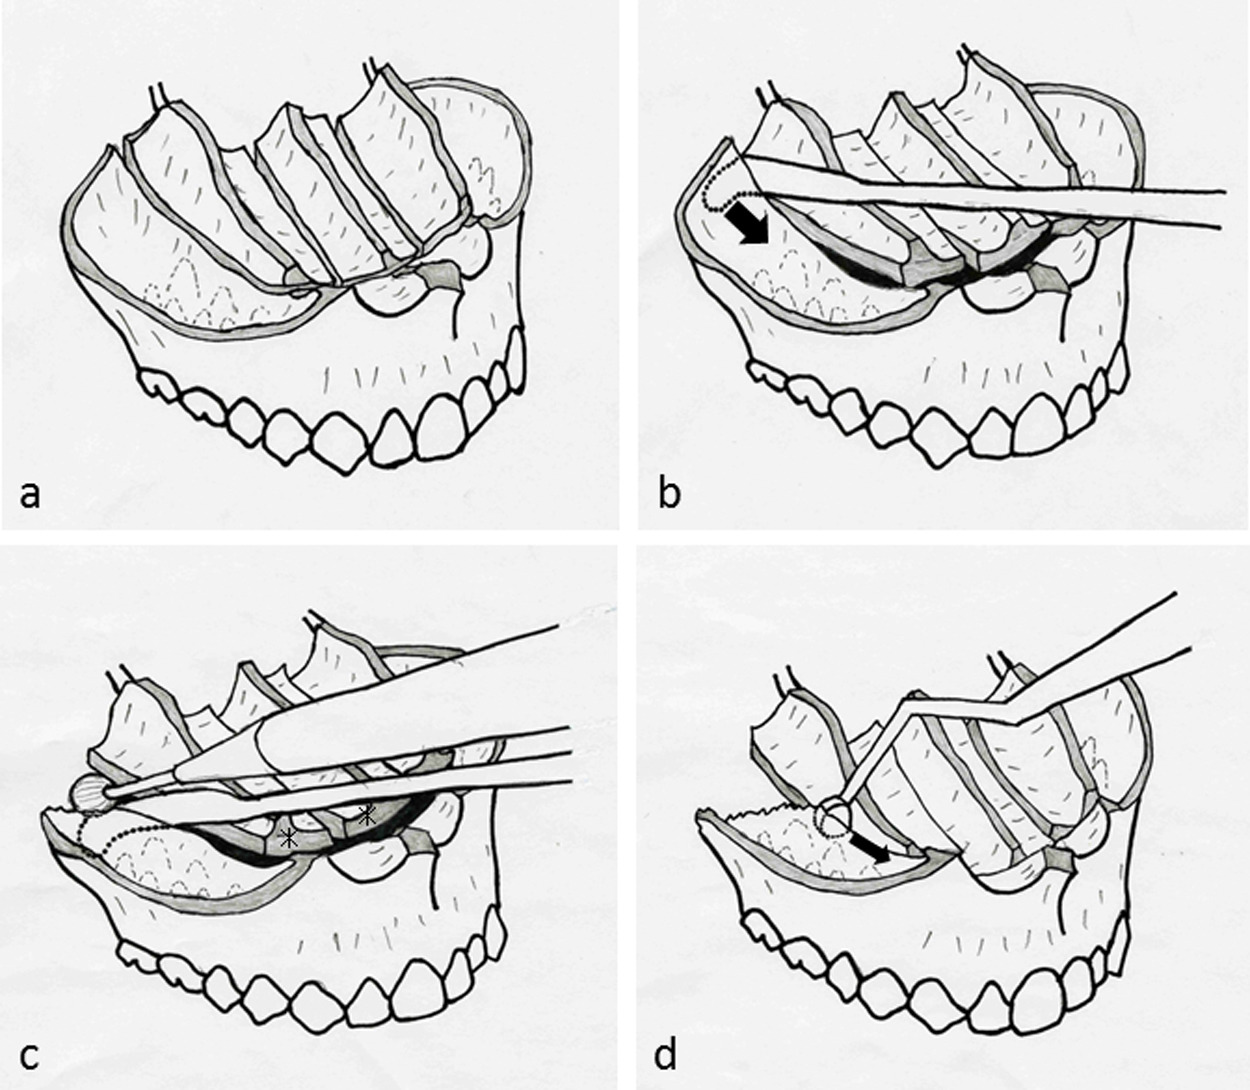 Maxillary single-jaw surgery combining Le Fort I and